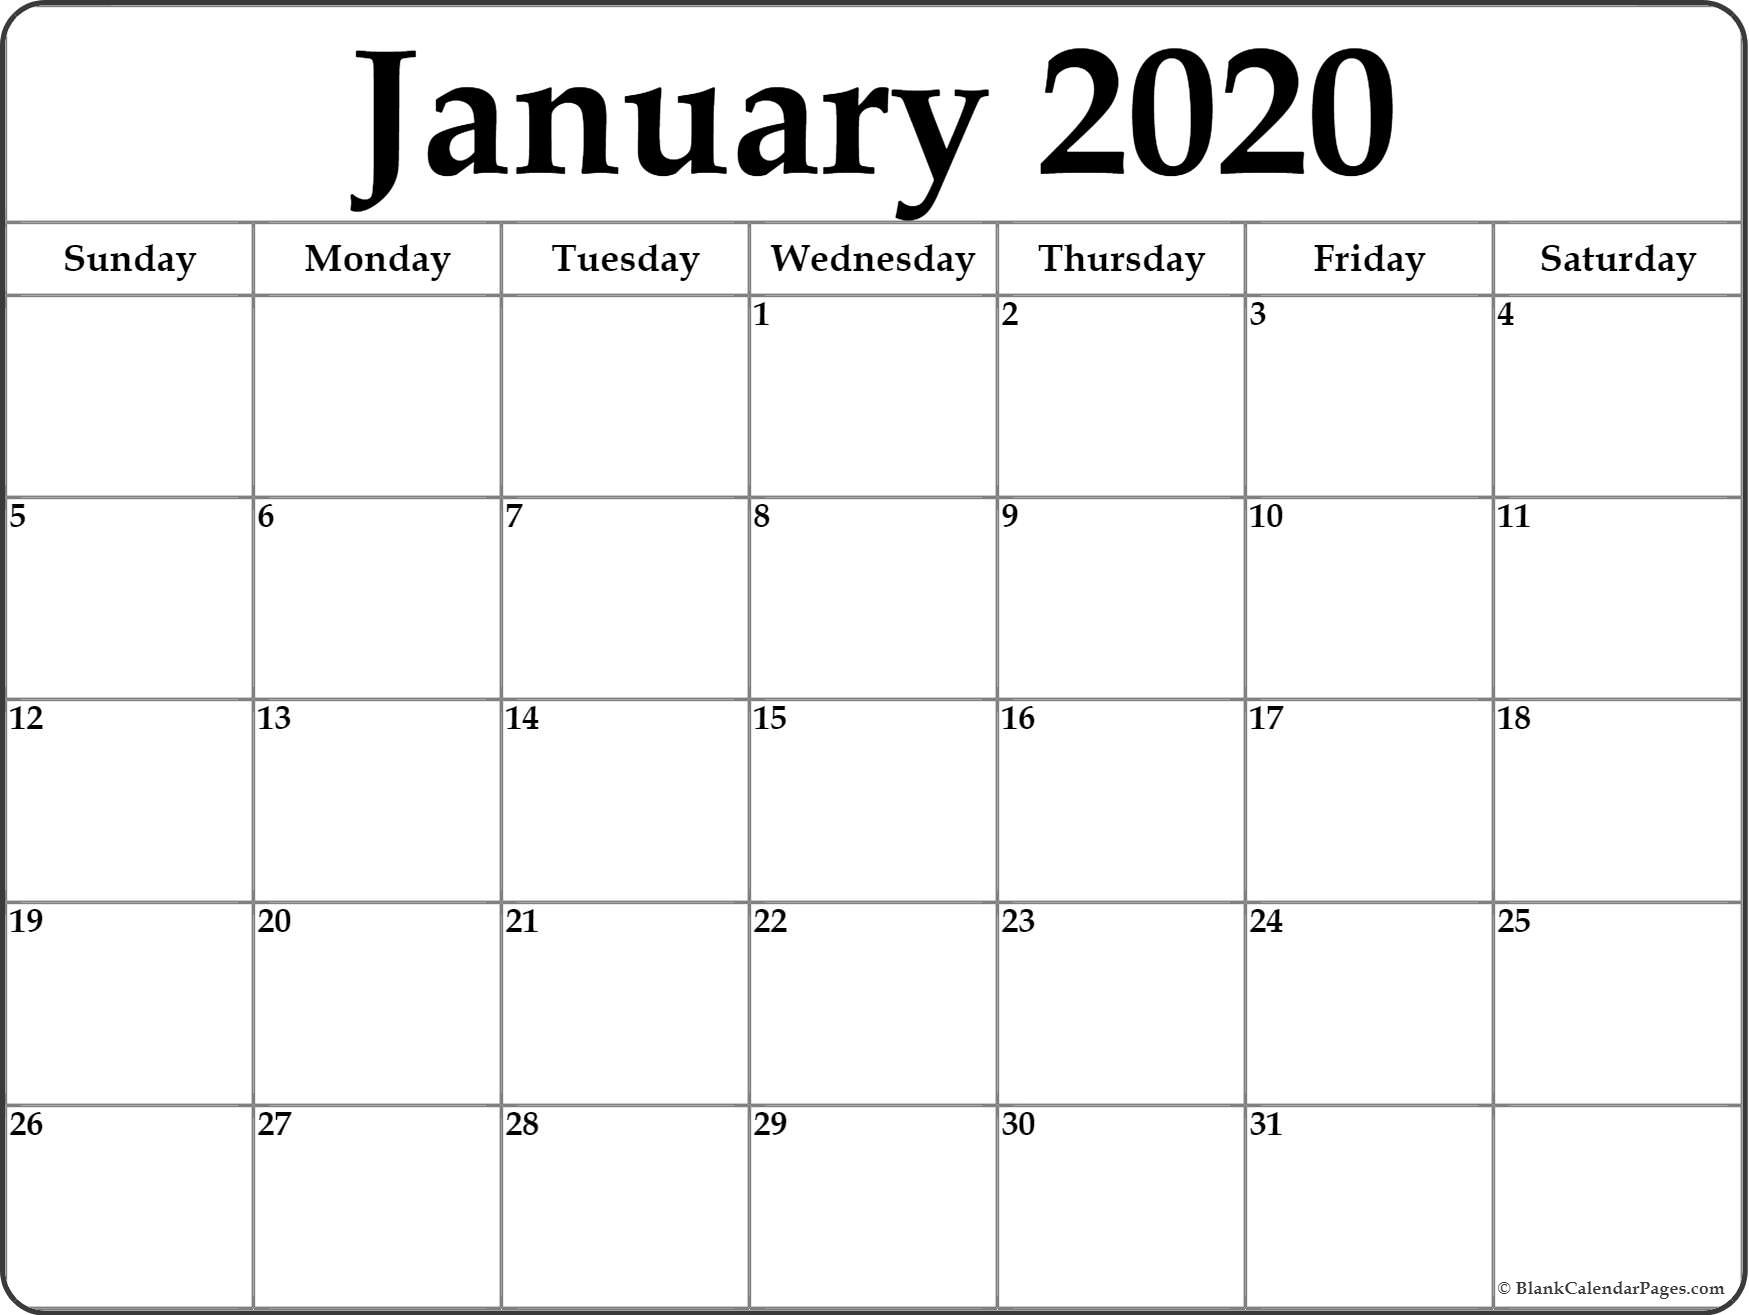 January 2020 Calendar | Free Printable Monthly Calendars  Free Printable Calendars 2020 Monthly